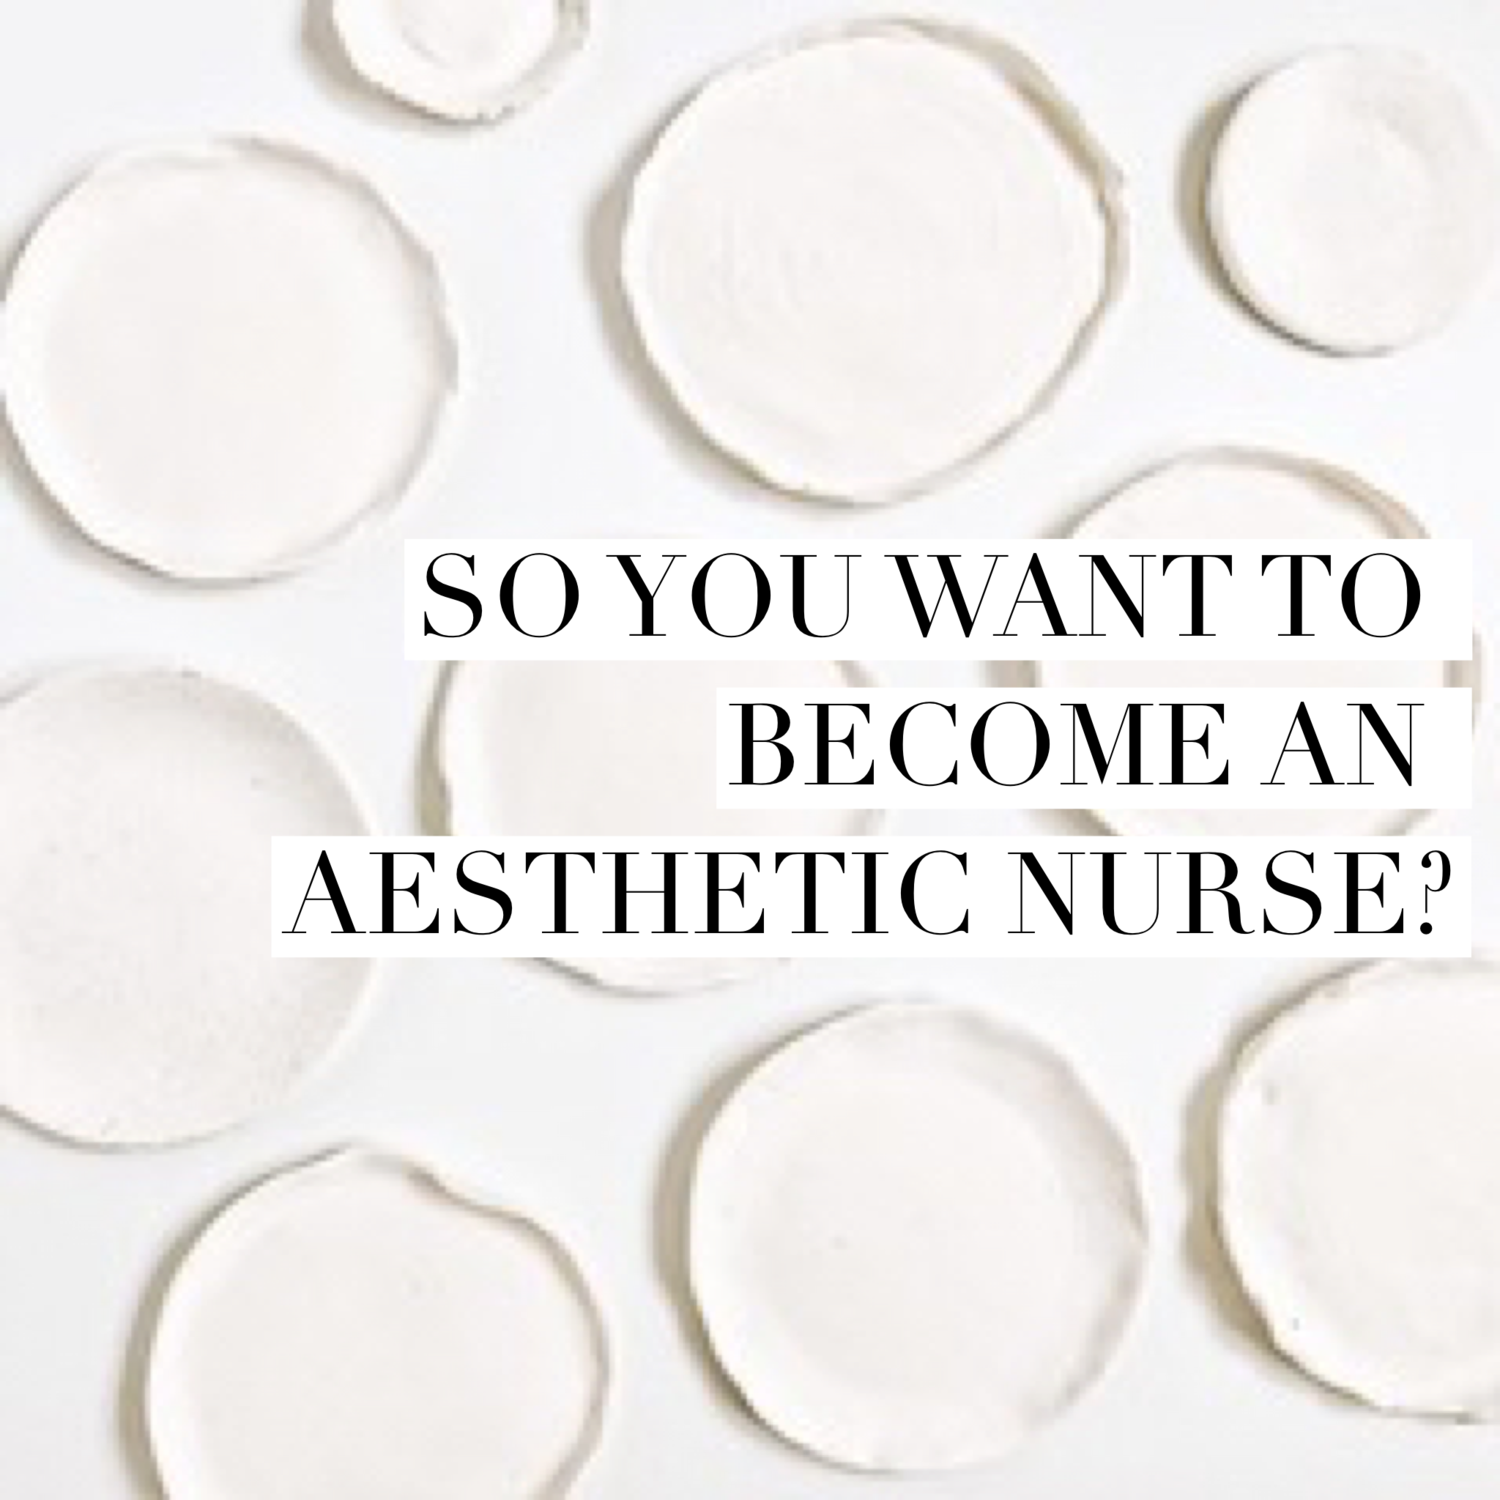 So you want to become an Aesthetic Nurse? — The Beauty Nurse